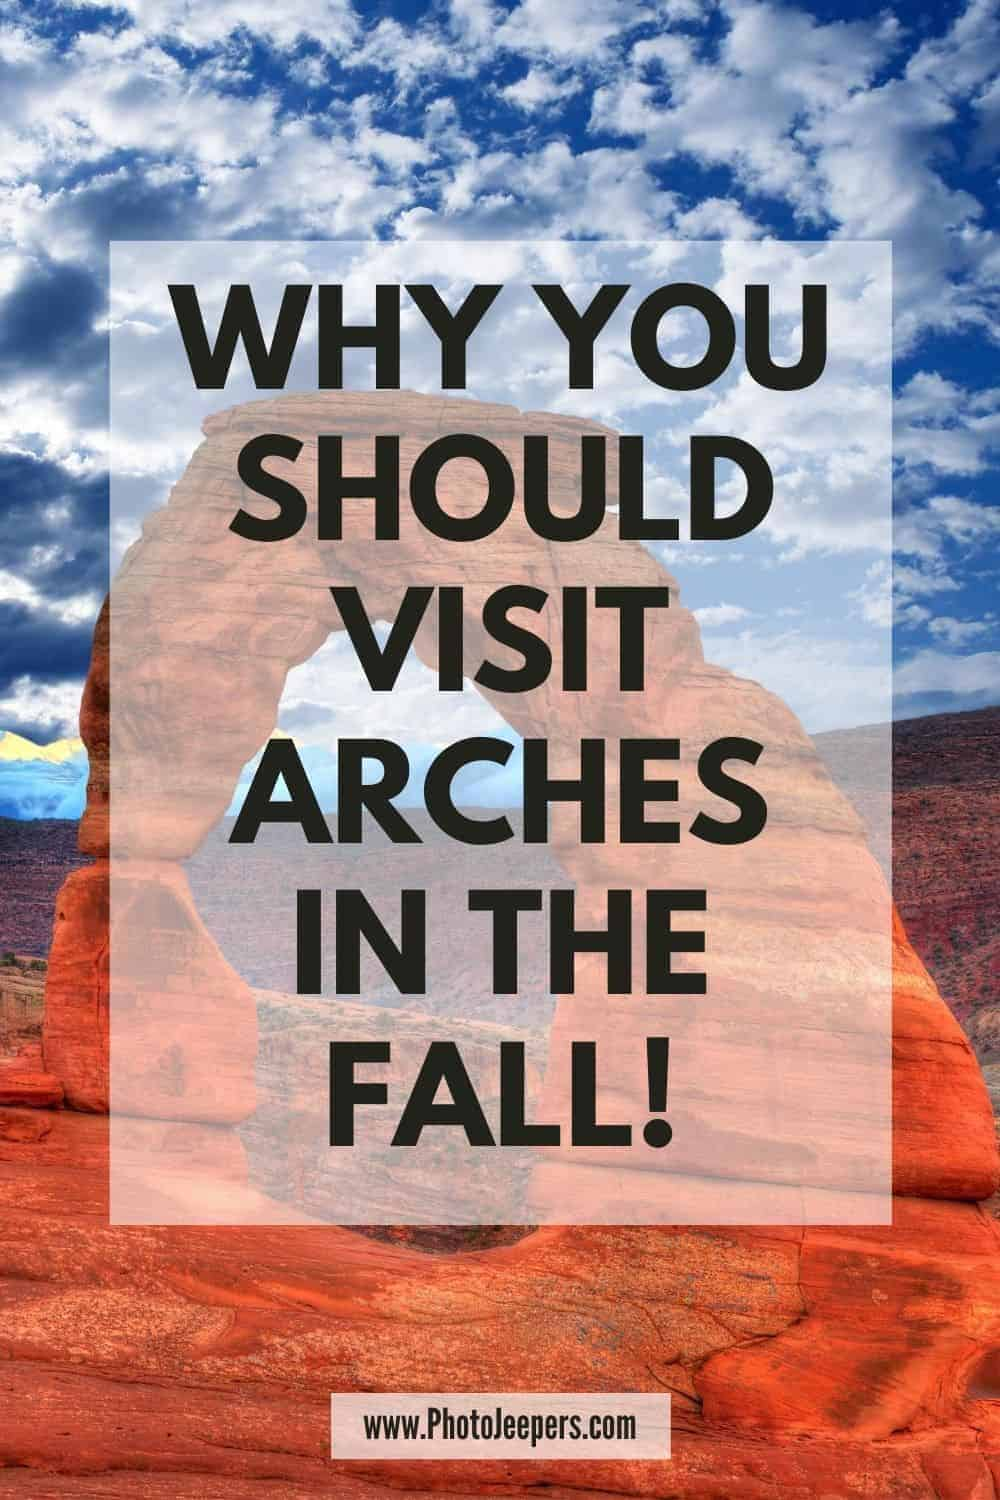 Why you should visit Arches in the Fall